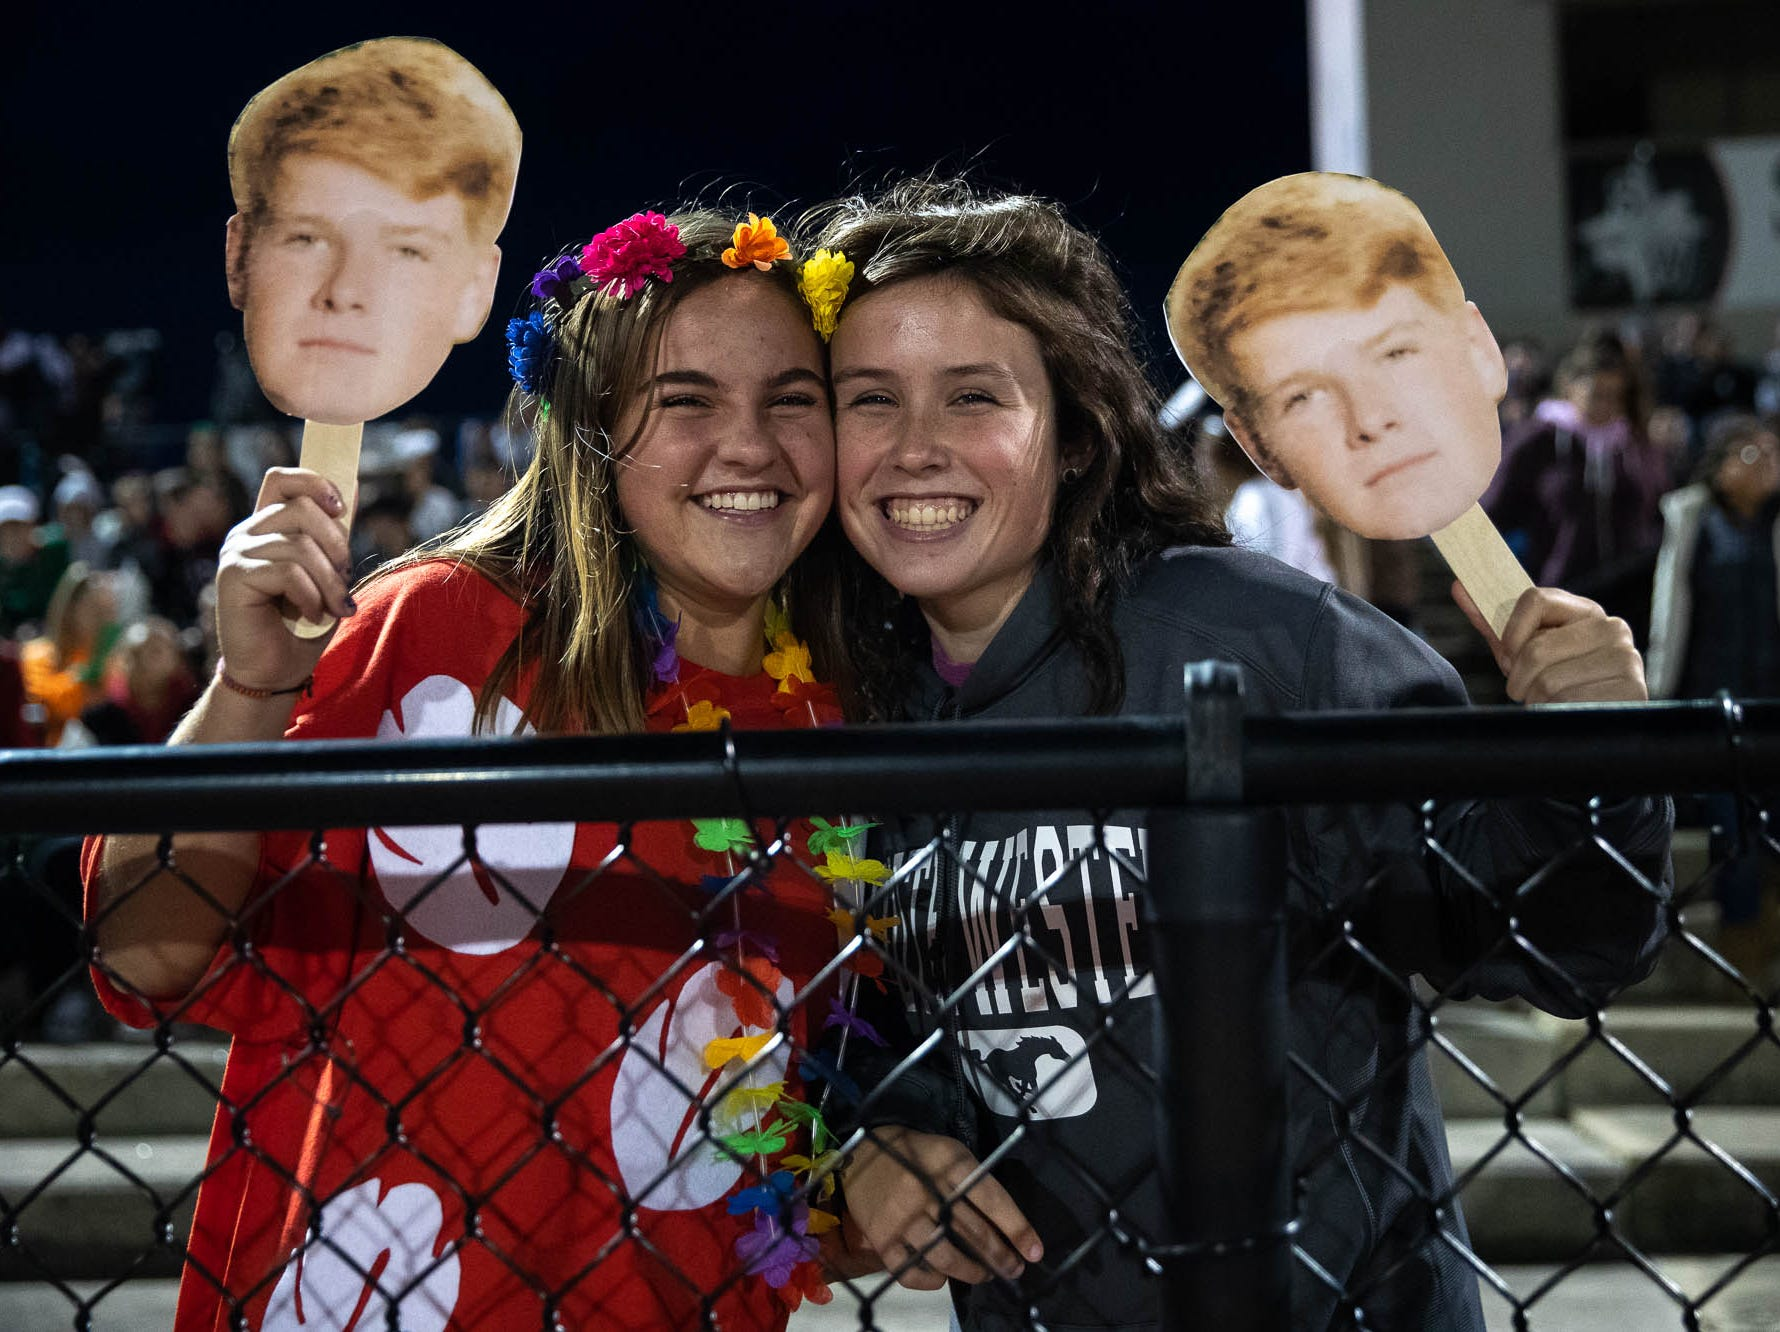 Two members of the South Western student section pose for a photo during a football game between South Western and New Oxford, Friday, Oct. 19, 2018, in Penn Township.